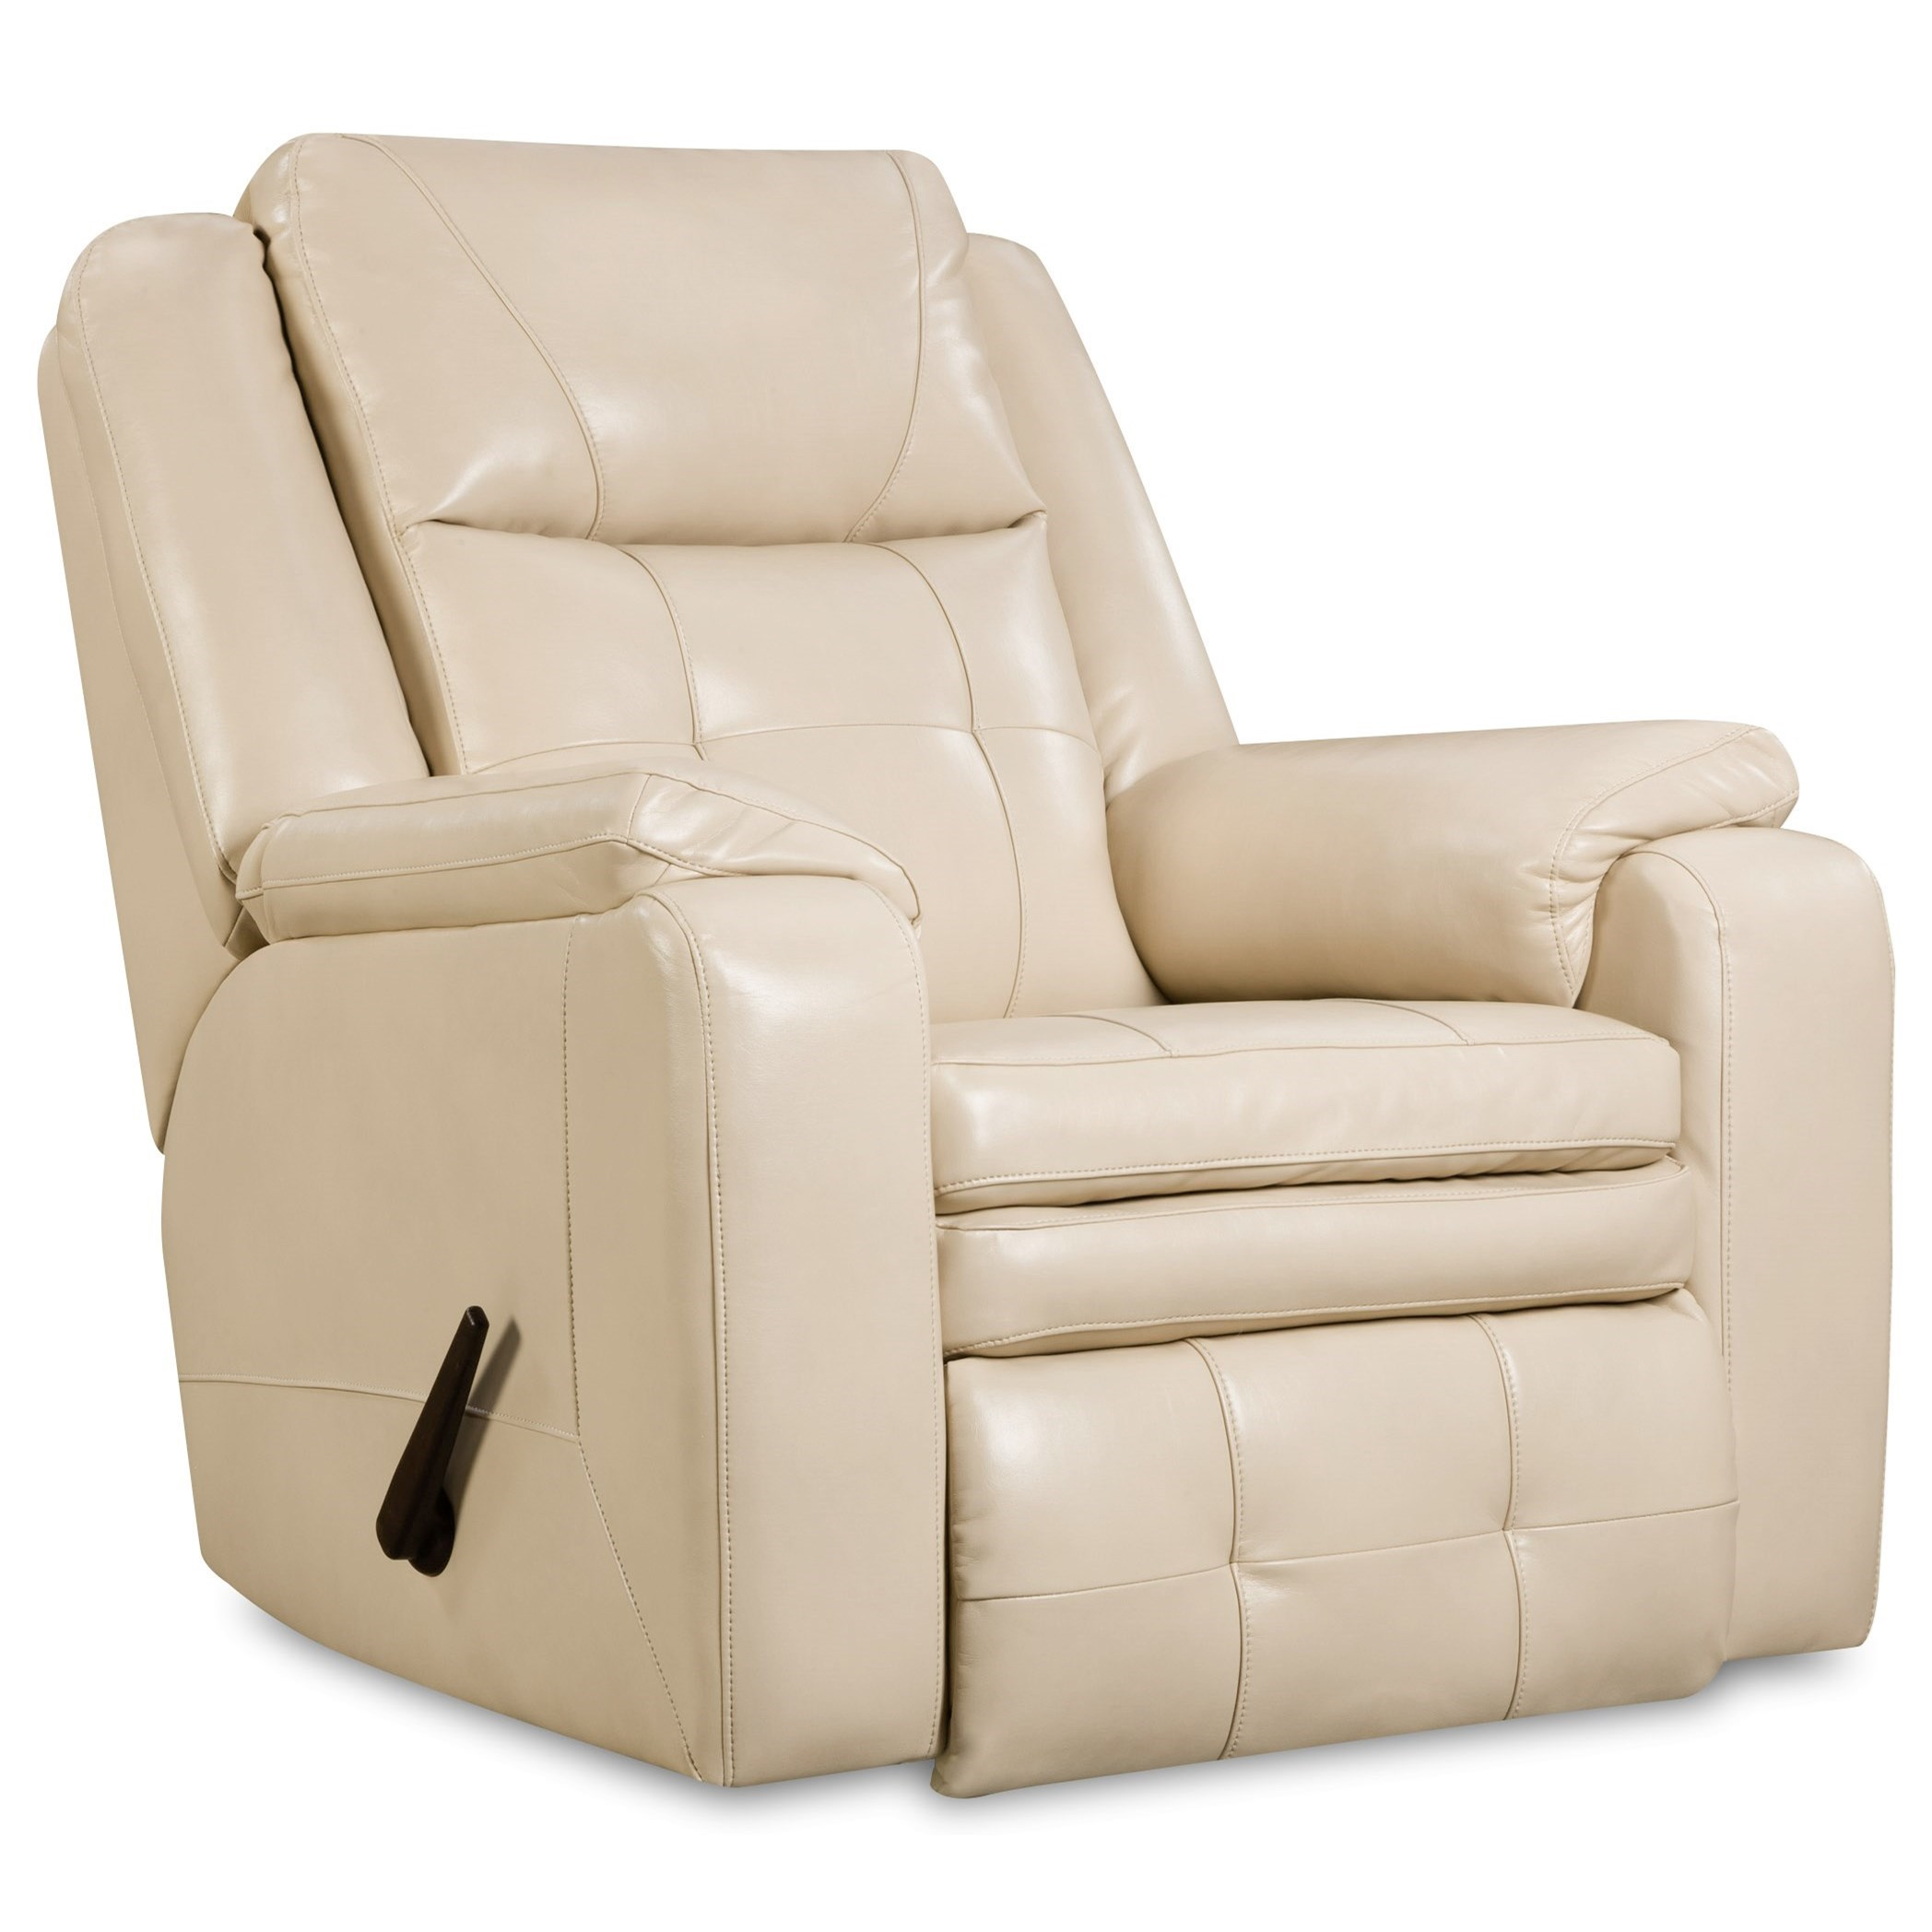 Inspire Wall Hugger Recliner by Southern Motion at Furniture Superstore - Rochester, MN